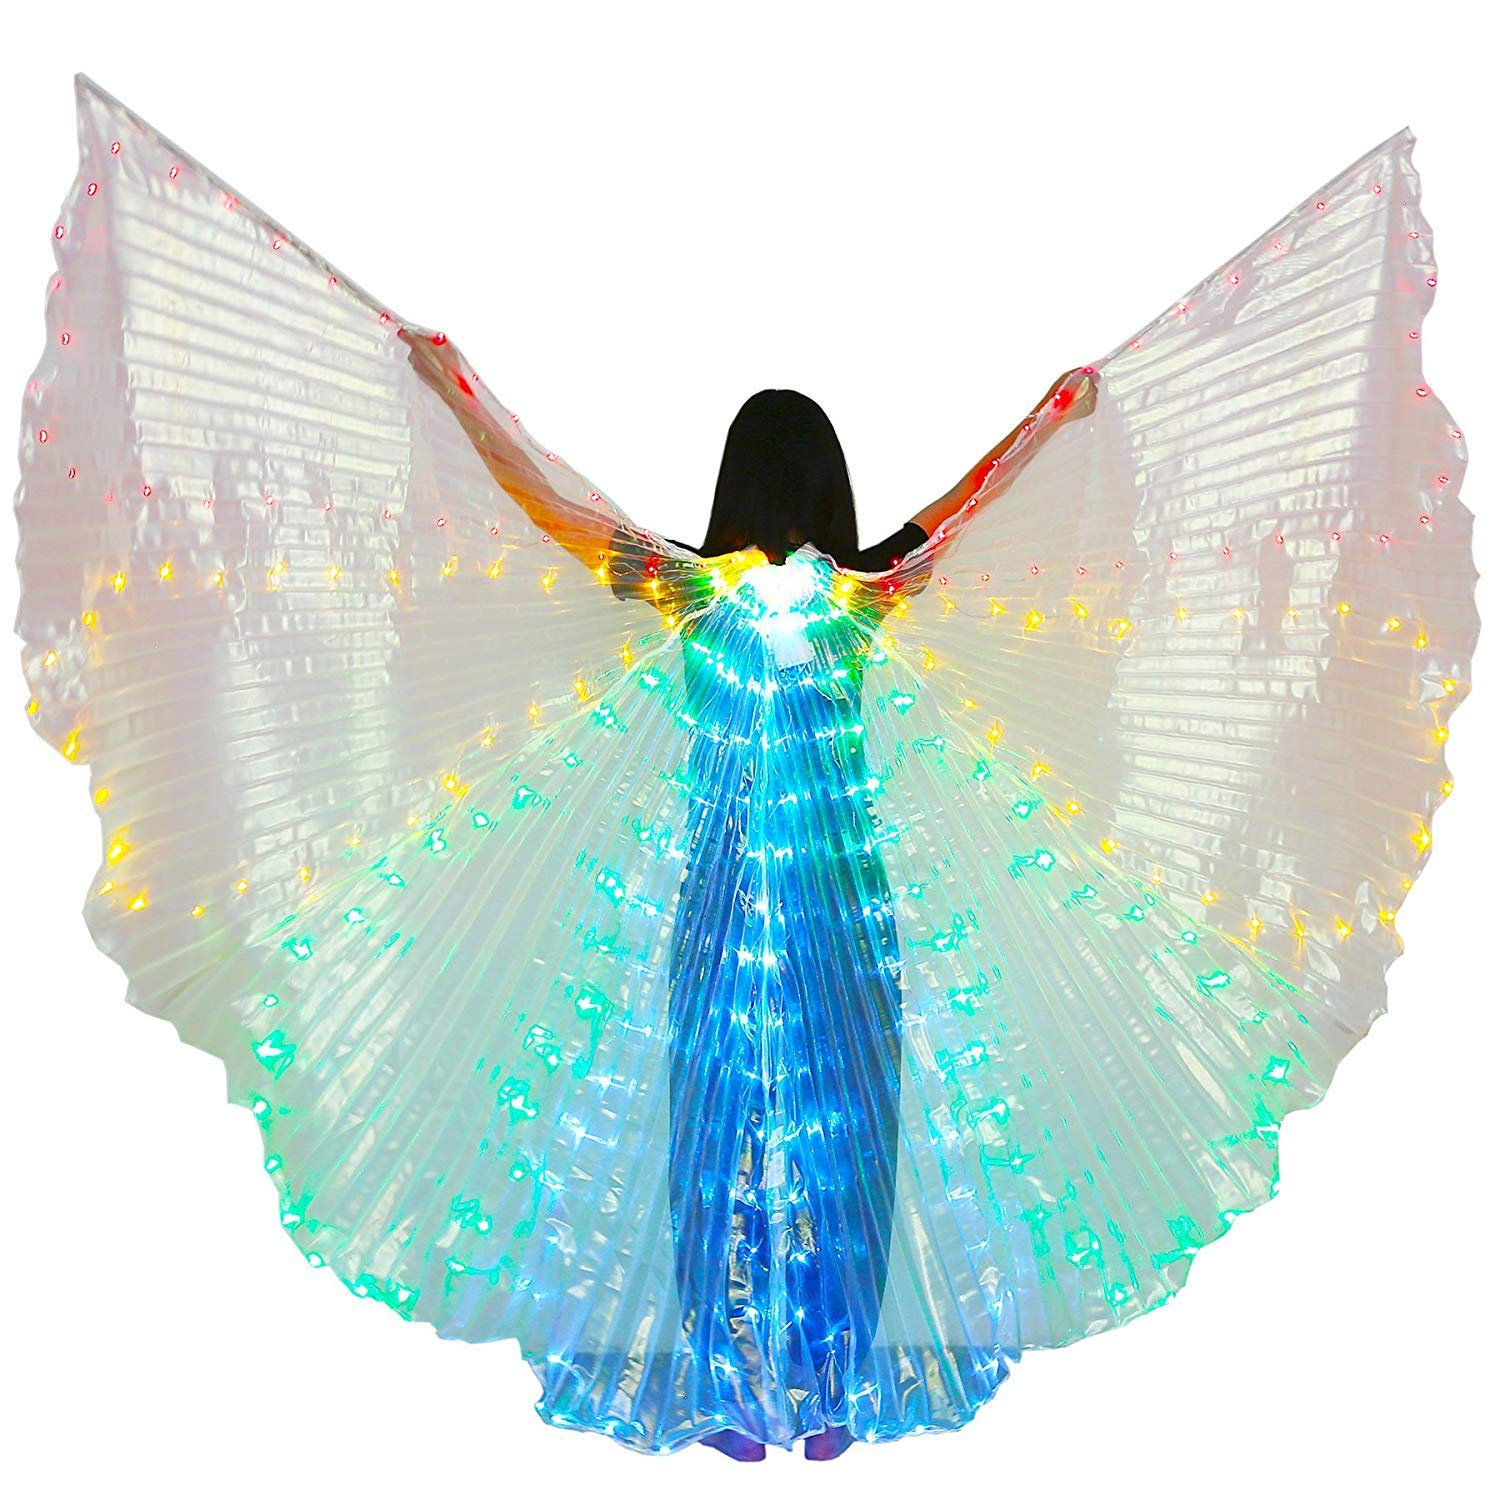 xiaoxiaoland εїз Belly Dance Wing with Rods-360 Degree Angel Wings with Portable Telescopic Sticks for Adults and Child,Red-yellow-green-blue by xiaoxiaoland